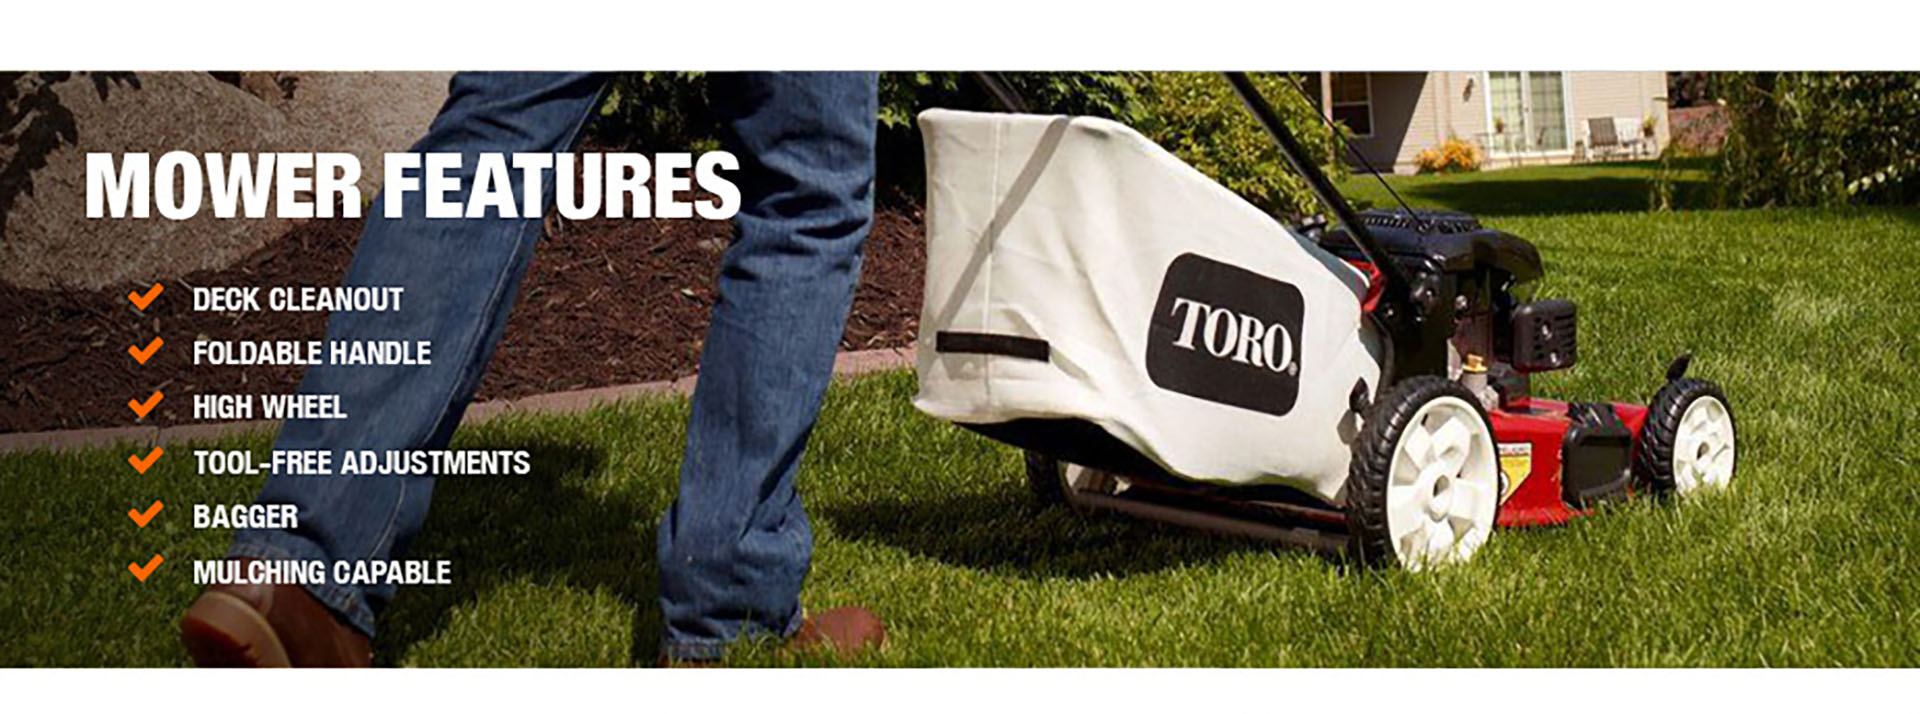 Toro 22 In Kohler High Wheel Variable Speed Gas Walk Behind Self Engine Assembly Diagram And Parts List For Lawnboy Walkbehindlawn Product Overview Mower Features